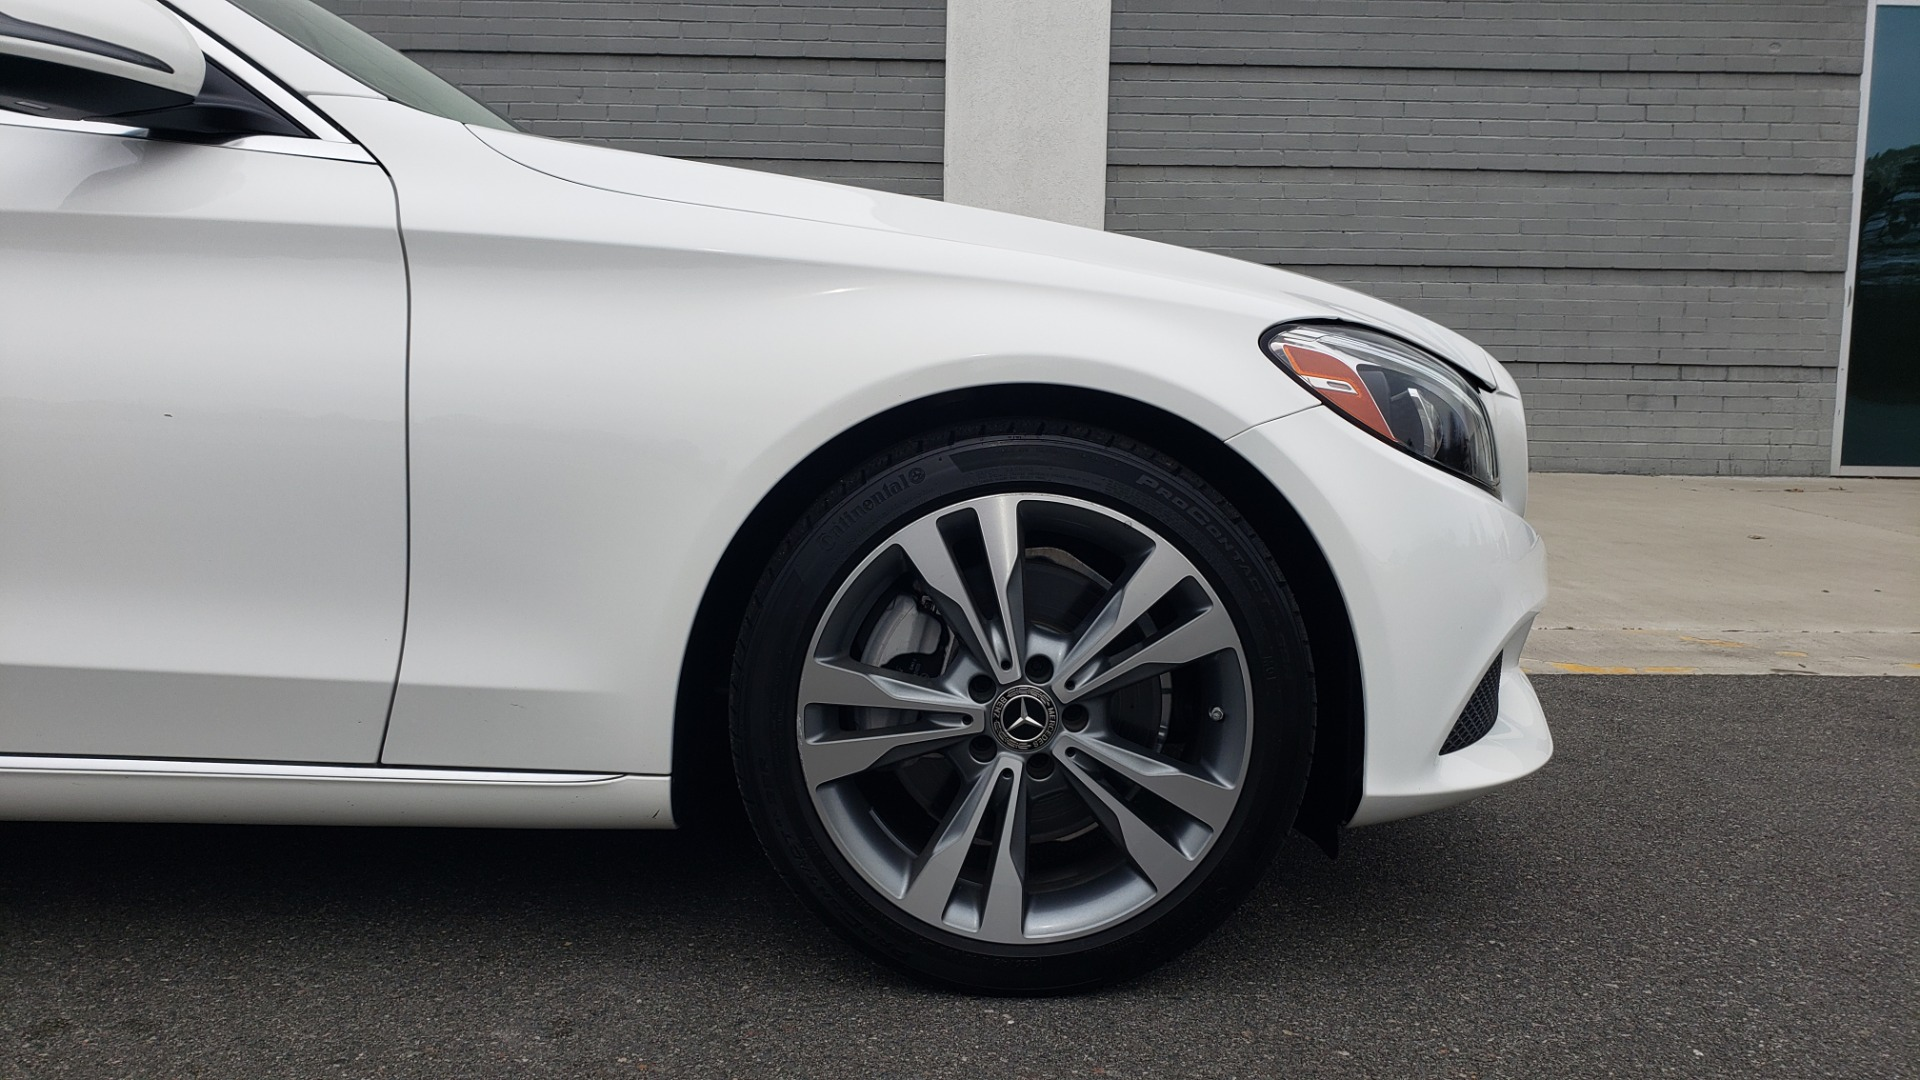 Used 2018 Mercedes-Benz C-CLASS C 300 PREMIUM / NAV / HTD STS / APPLE CARPLAY / REARVIEW for sale Sold at Formula Imports in Charlotte NC 28227 84